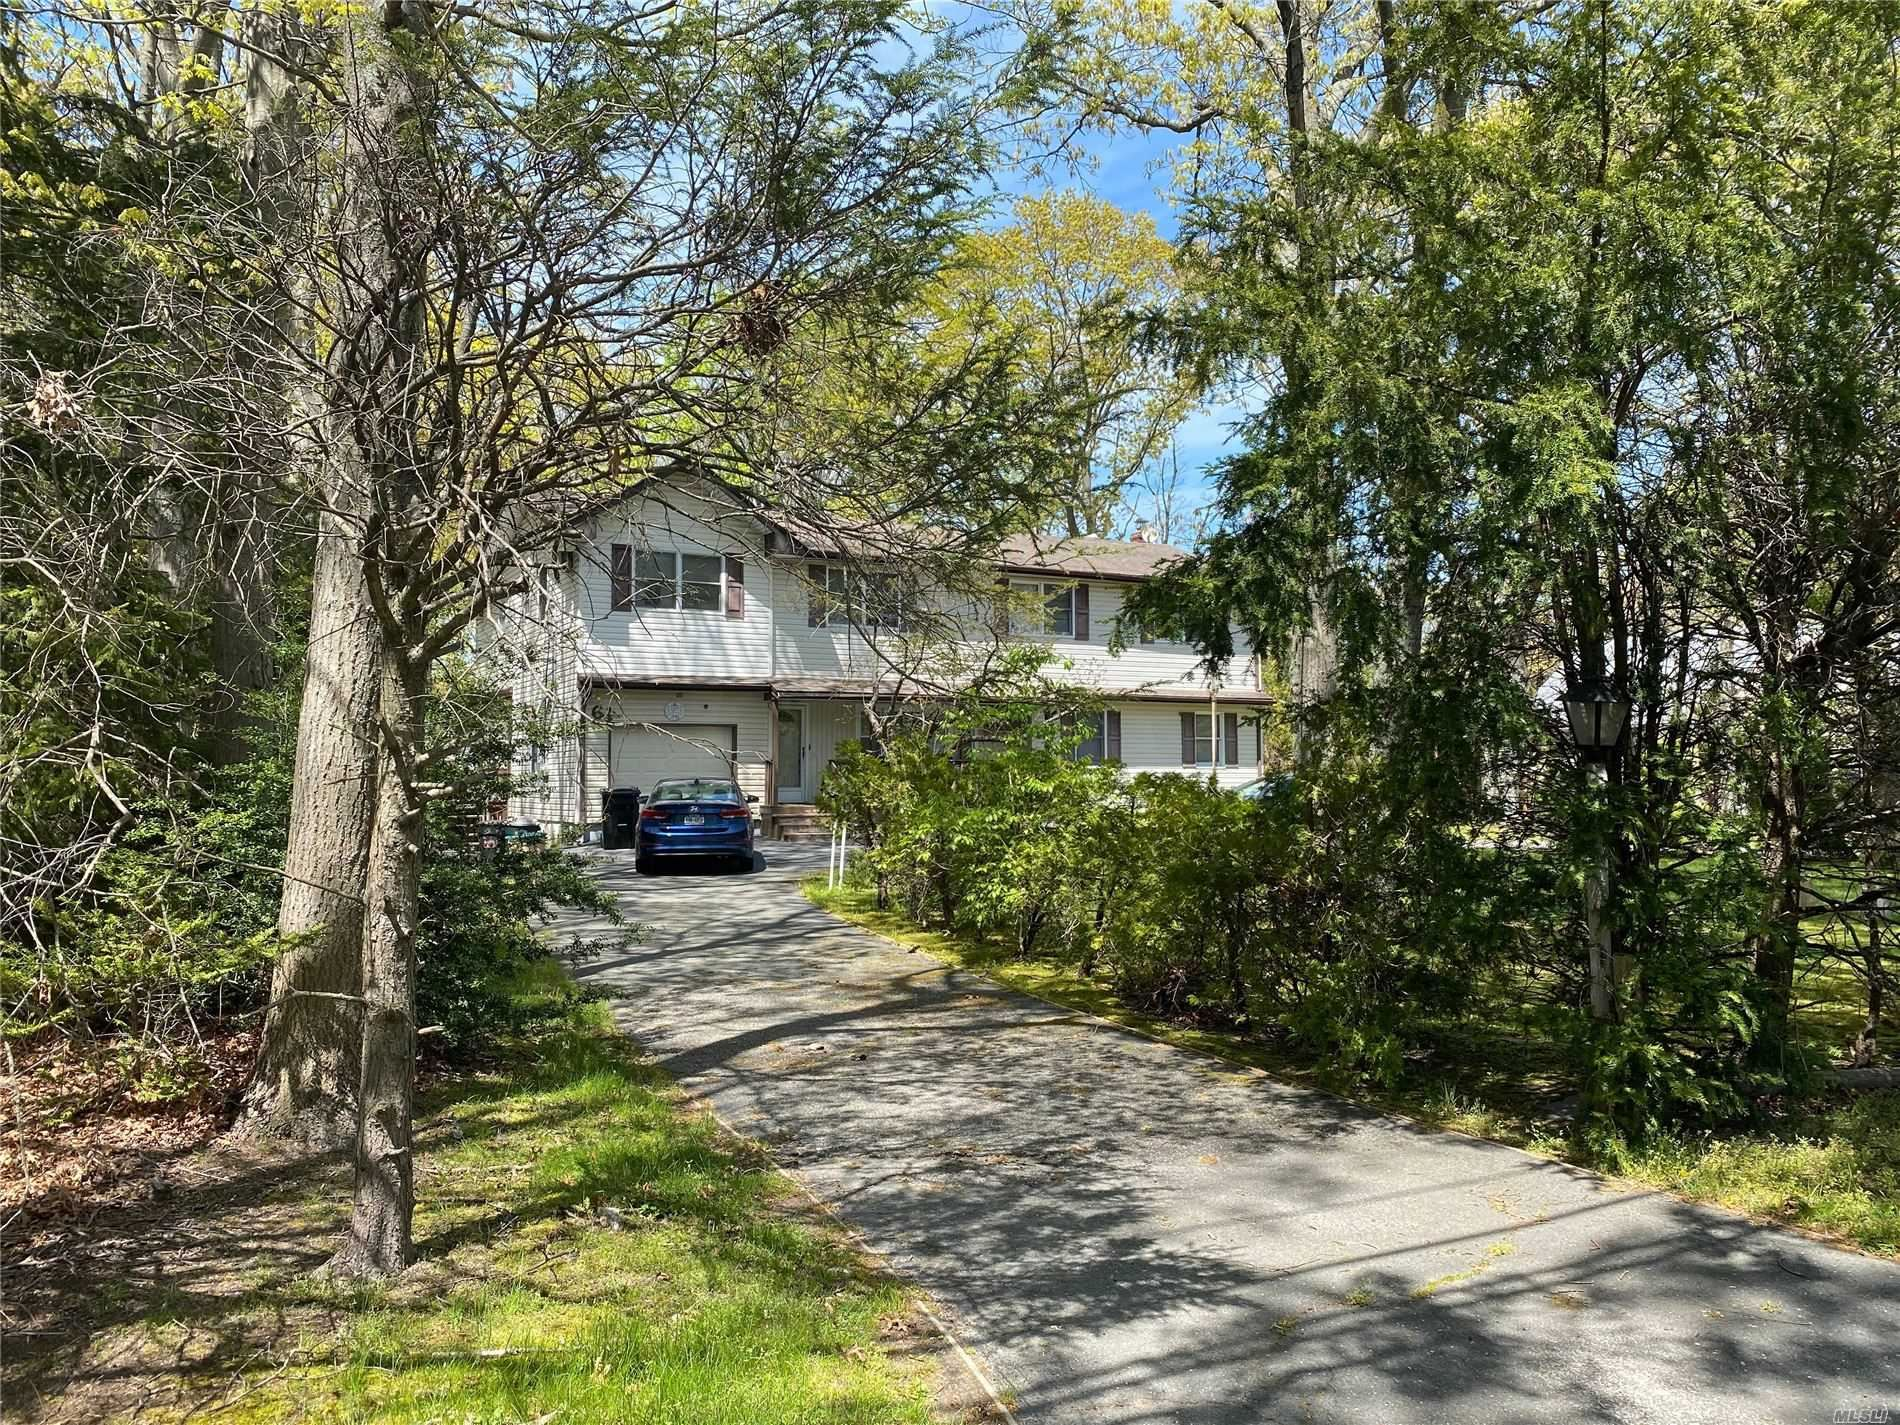 61 40th Street, Islip, NY 11751 - MLS#: 3215648